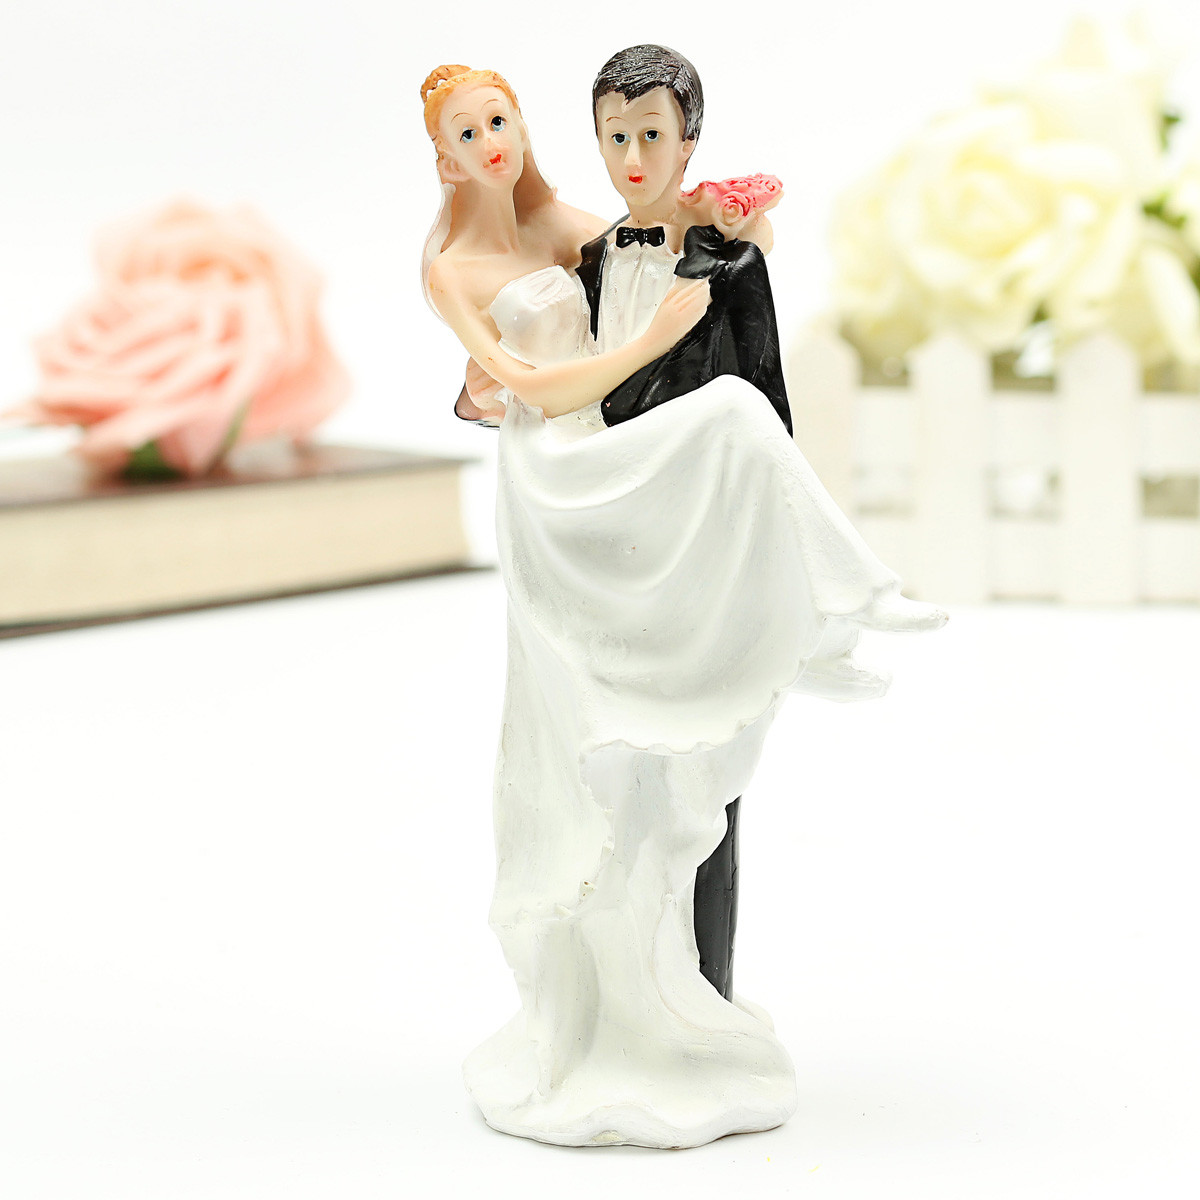 Bride Wedding Cake Topper: FUNNY ROMANTIC WEDDING CAKE TOPPER FIGURE BRIDE GROOM